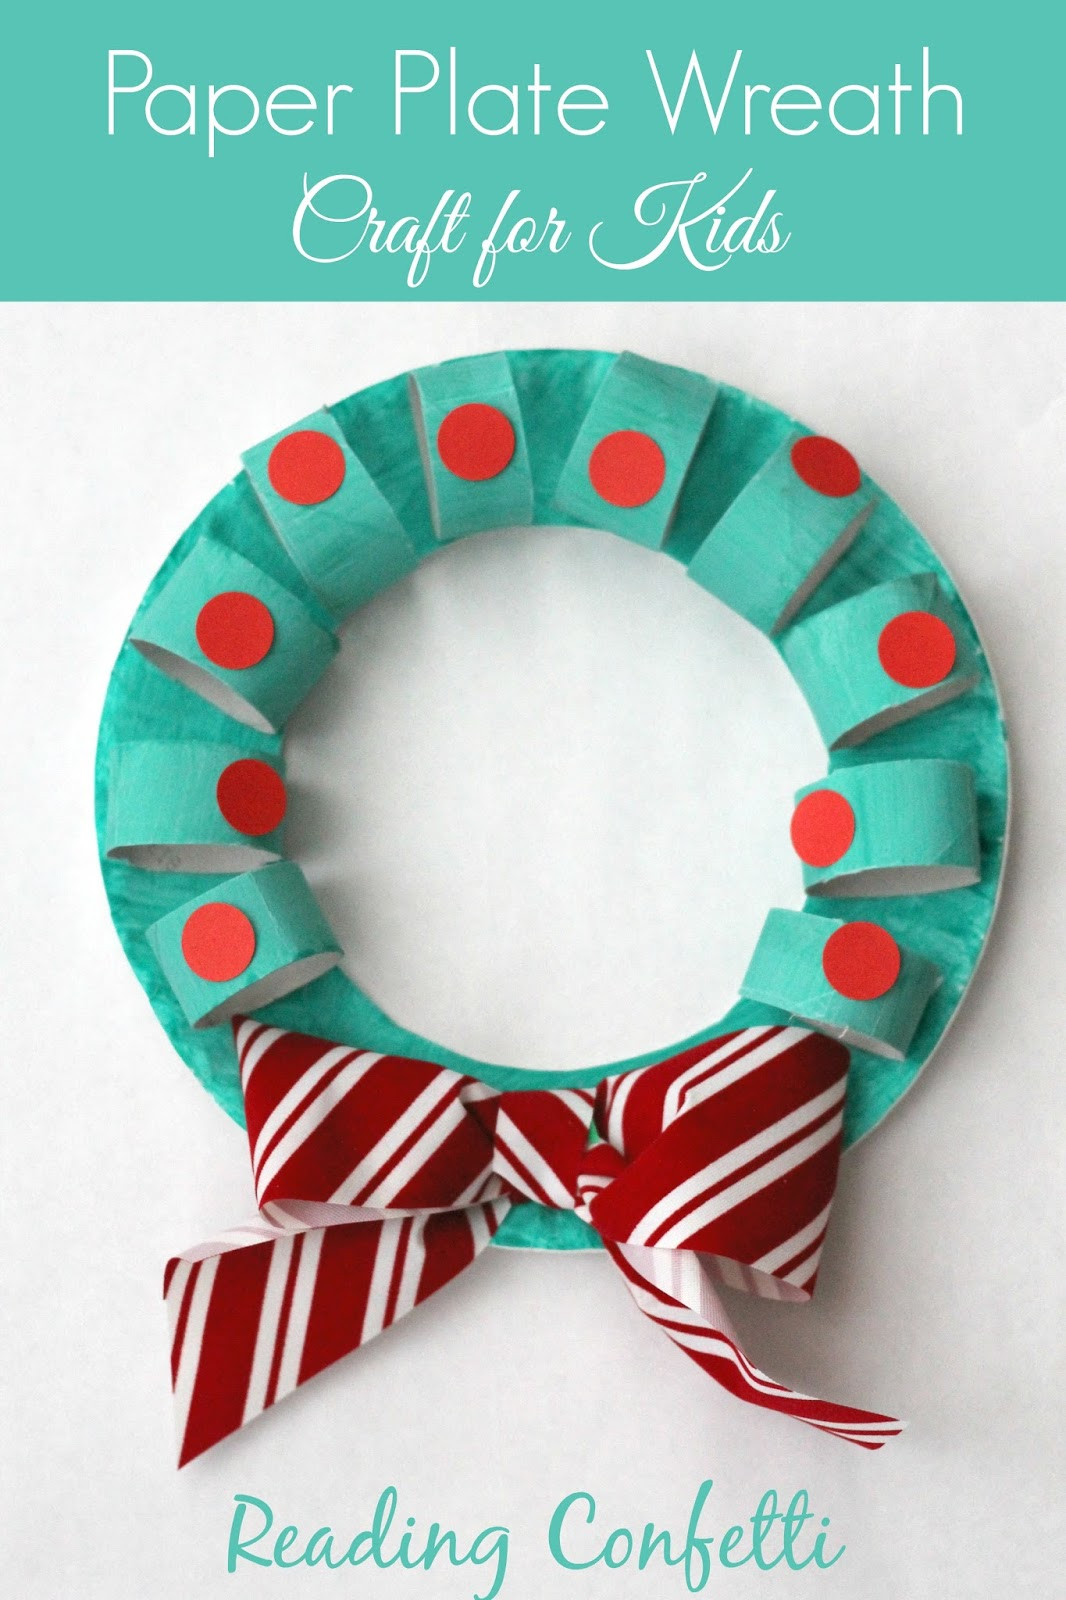 Christmas Paper Crafts Lovely Cardboard Tube and Paper Plate Wreath Craft Reading Confetti Of Adorable 49 Pictures Christmas Paper Crafts